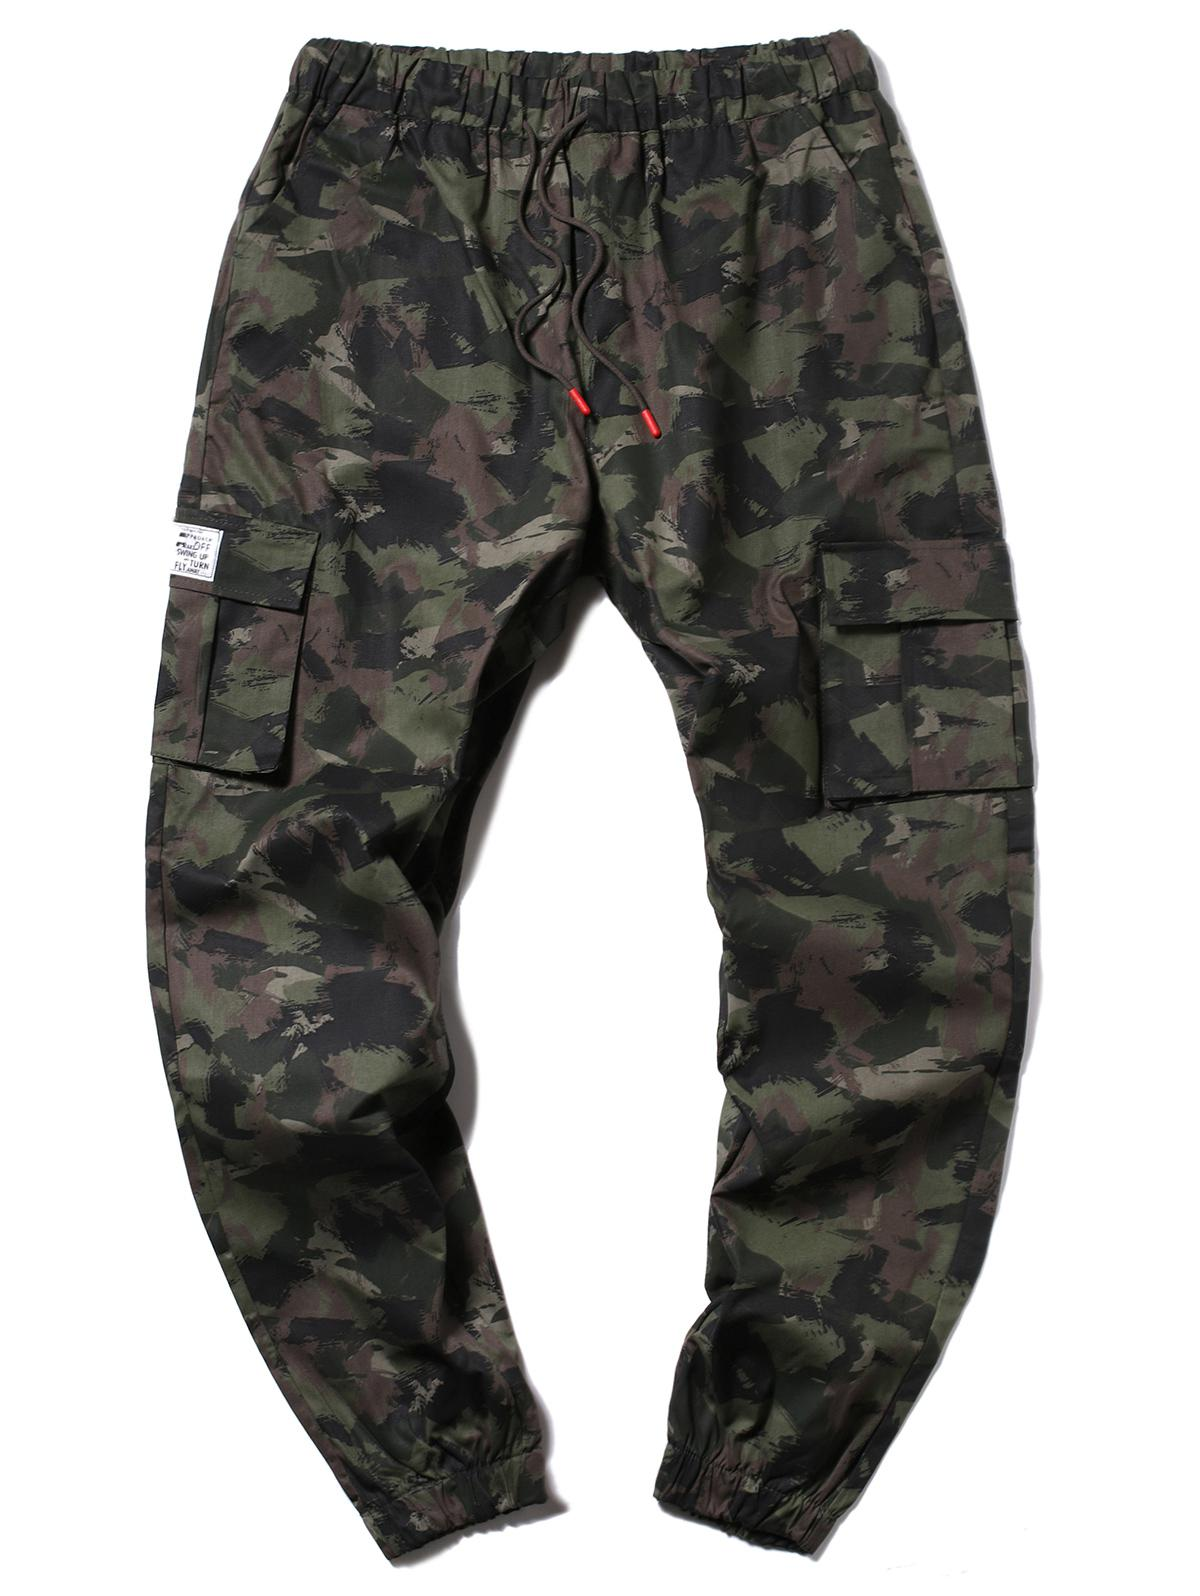 Camouflage Multi-Pocket Drawstring Cargo Jogger Pants, Army green